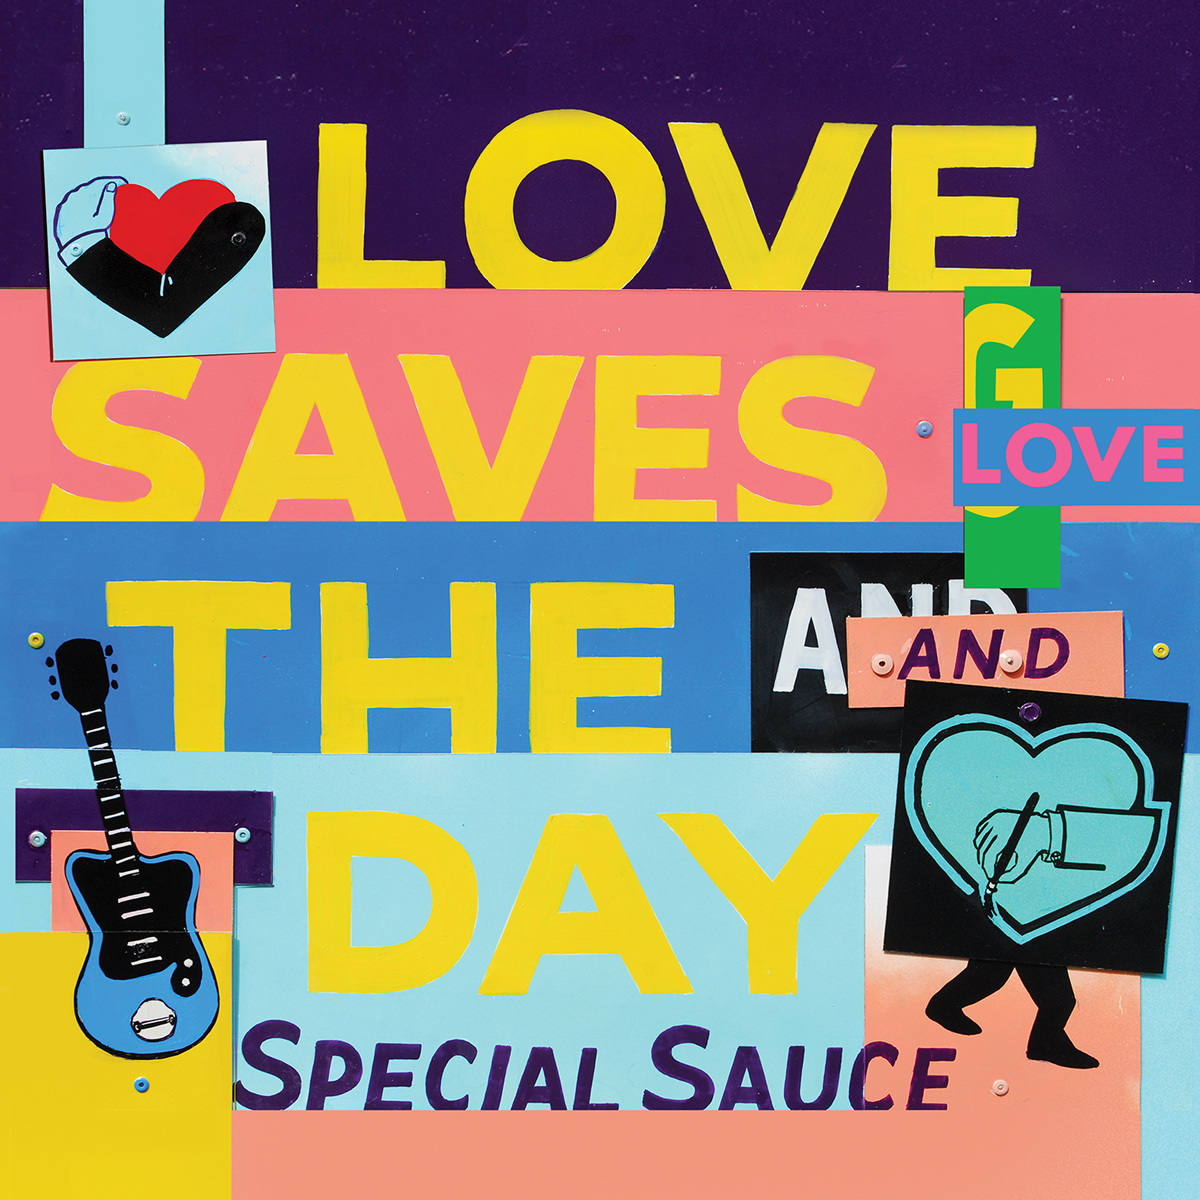 G. Love and the Special Sauce, Loves Saves the Day album cover art. Photo by: G. Love & the Special Sauce